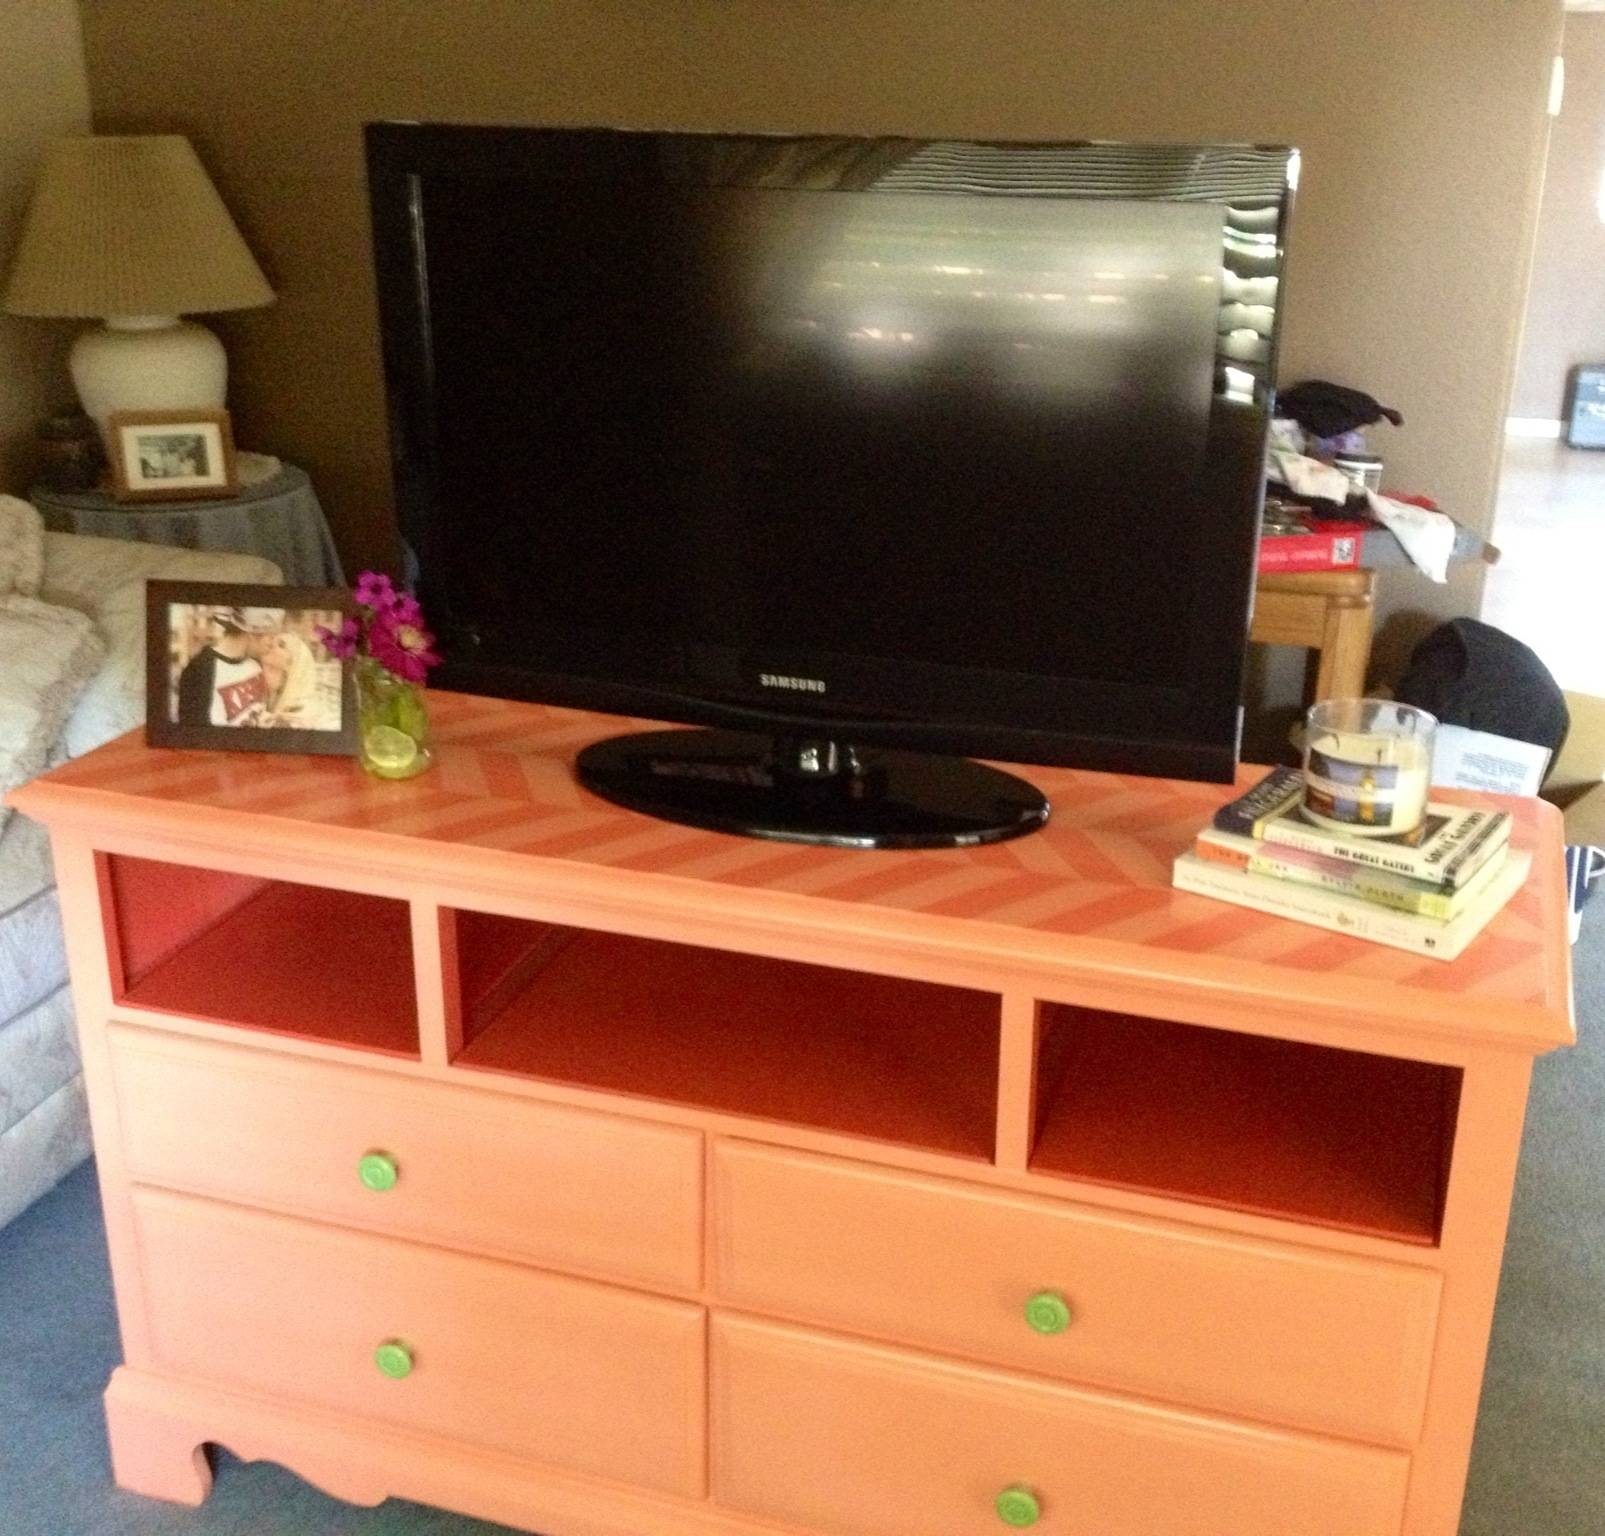 Before And After | Dresser Turned Tv-Stand | Courtney's Craftin&cookin throughout Orange Tv Stands (Image 2 of 15)